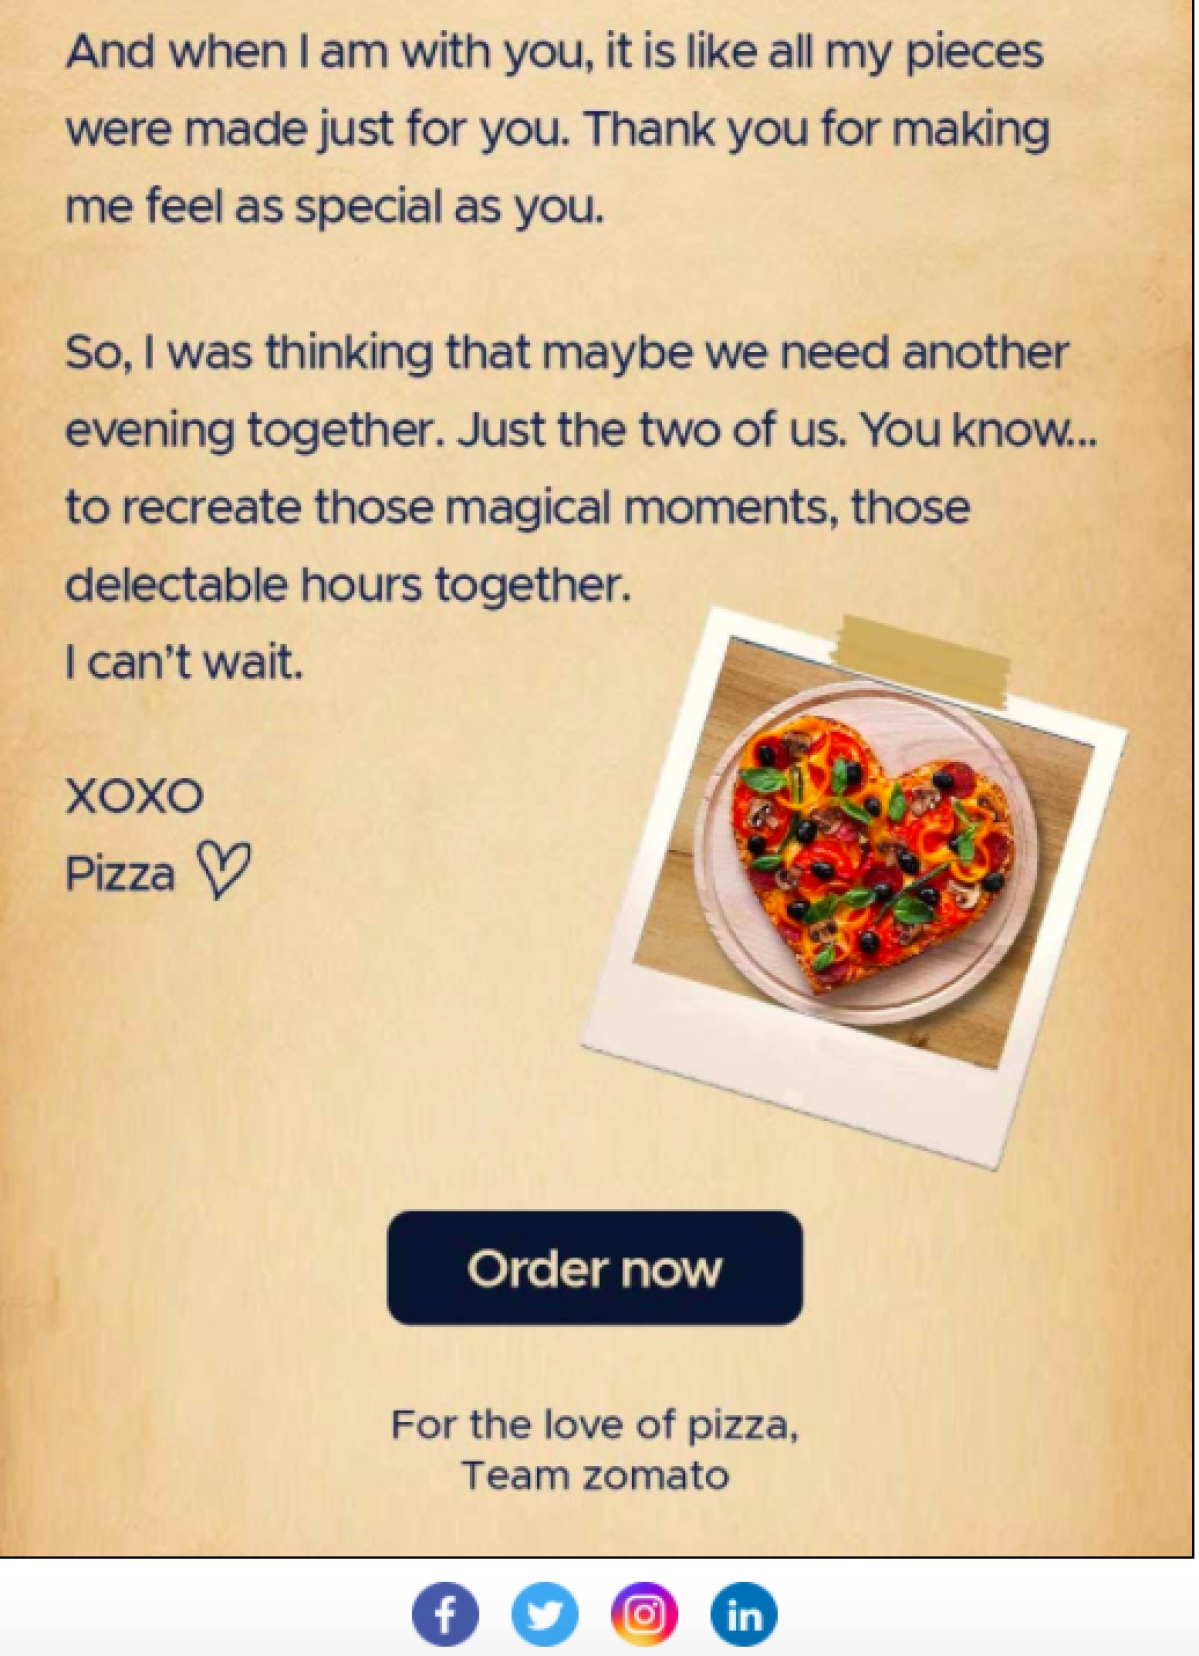 Part 2 of Zomato's love letter from pizza